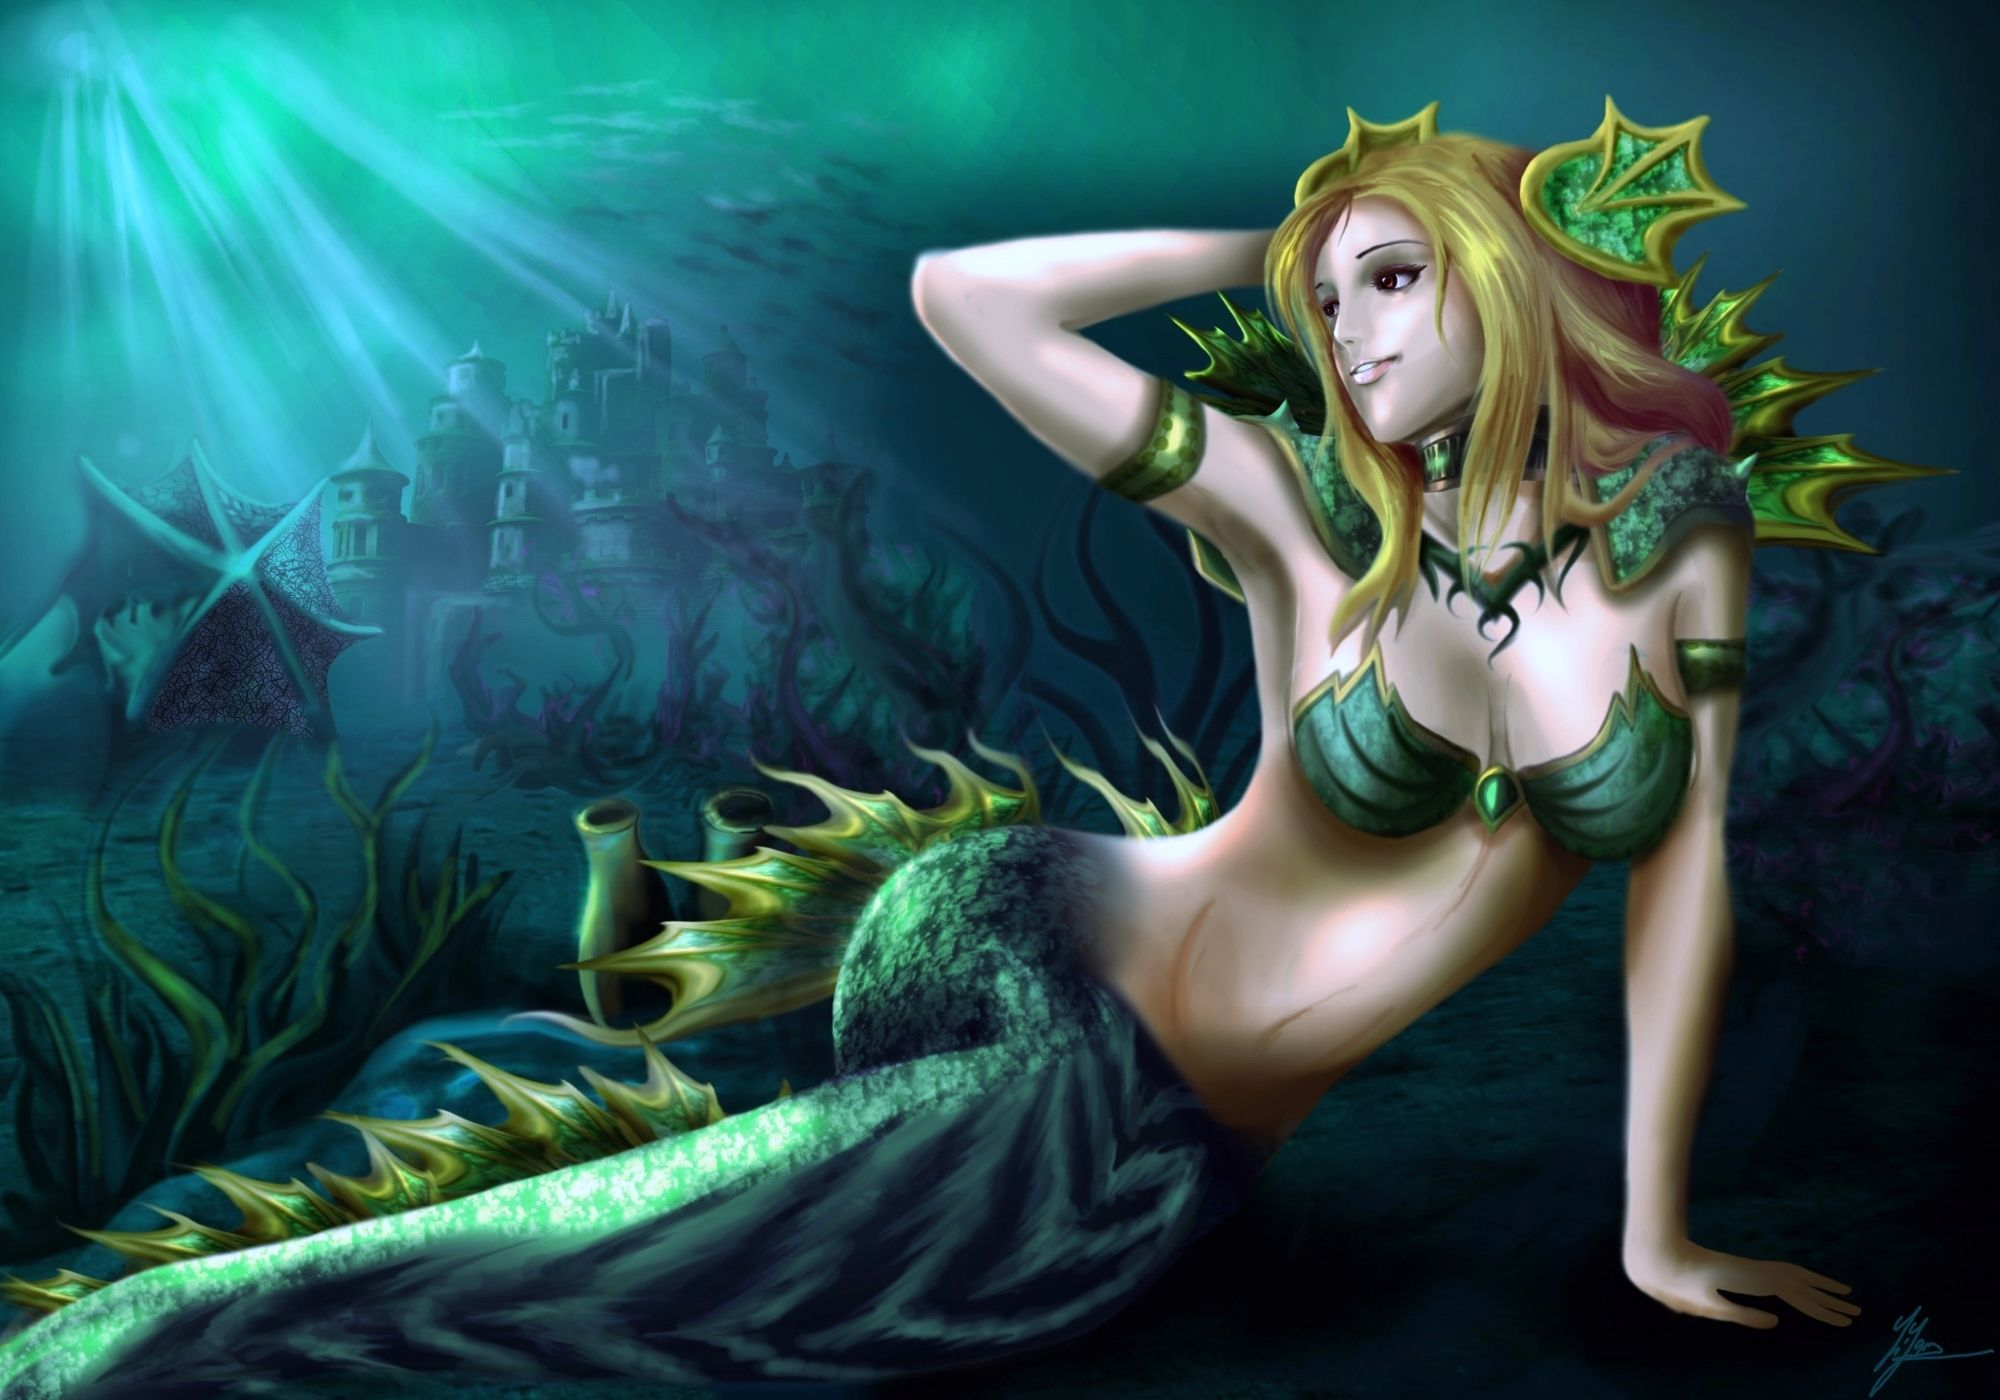 Mermaid xxxx naga wallpepar softcore image